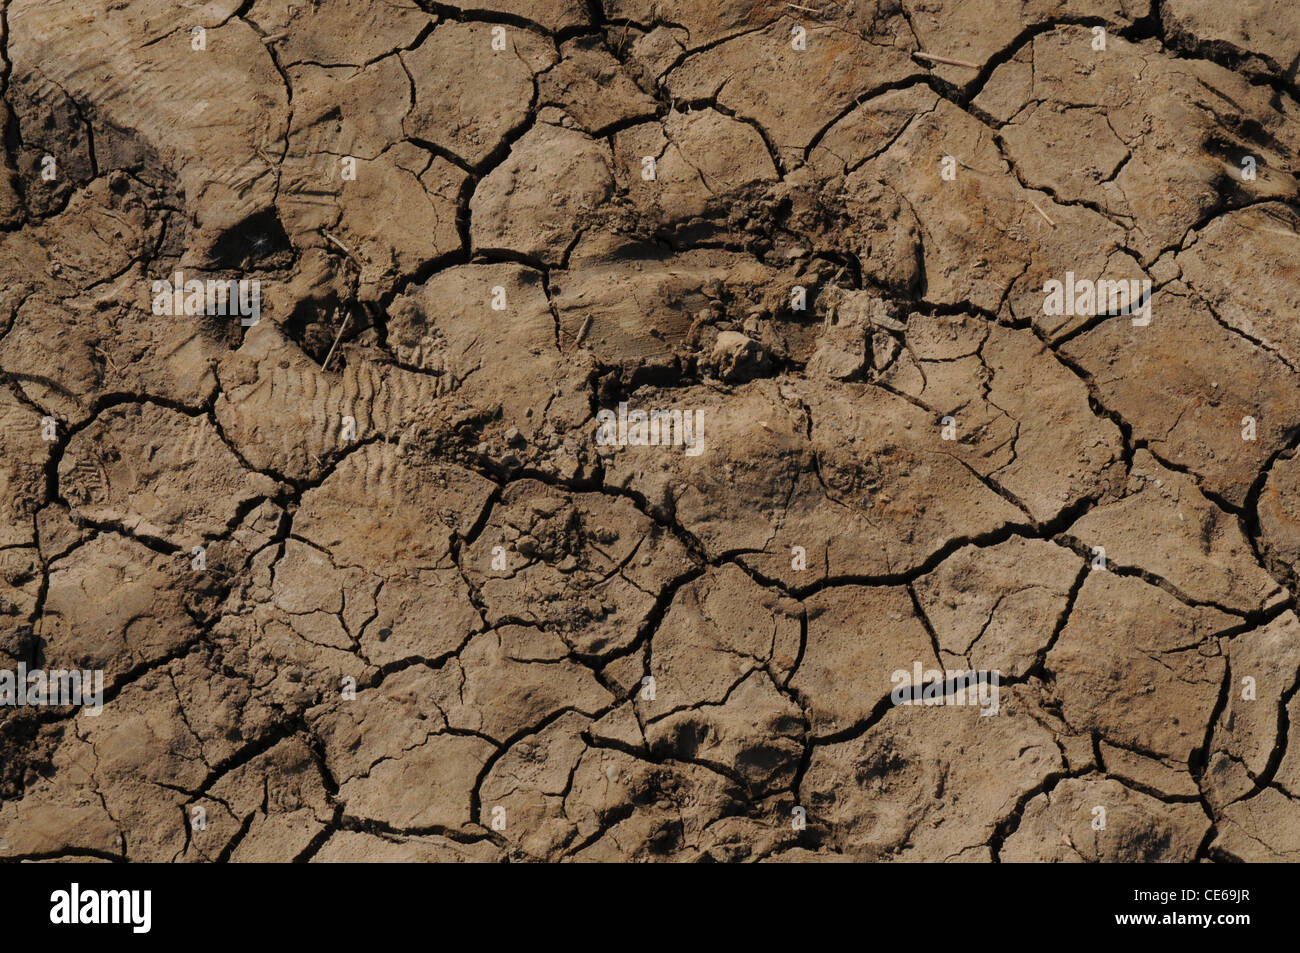 Foot prints preserved in dried mud - Stock Image